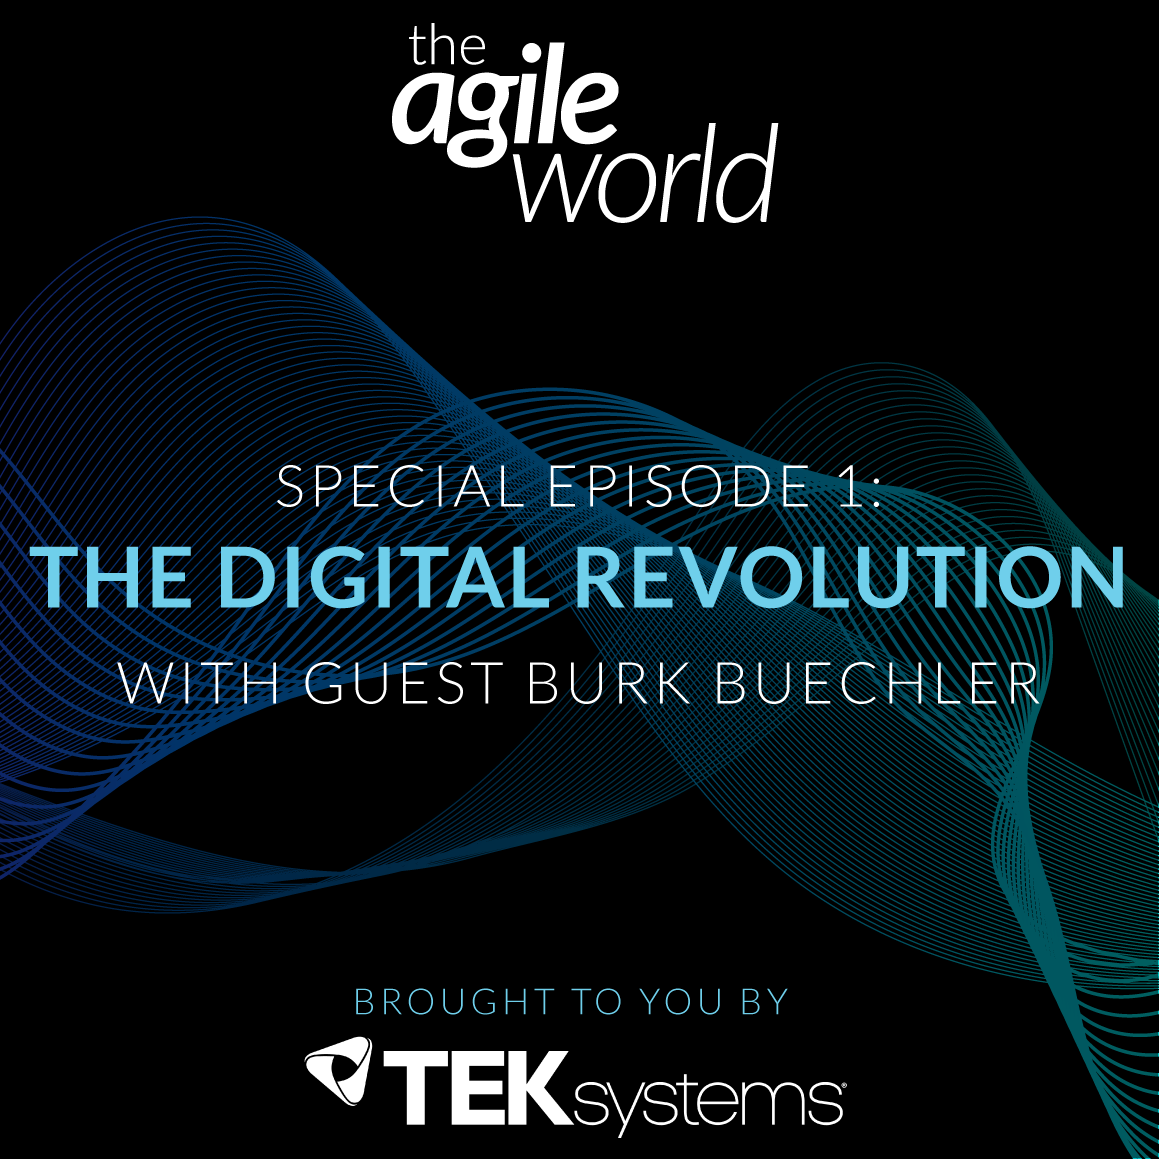 TheAgileWorld-teksystems-episode1.png